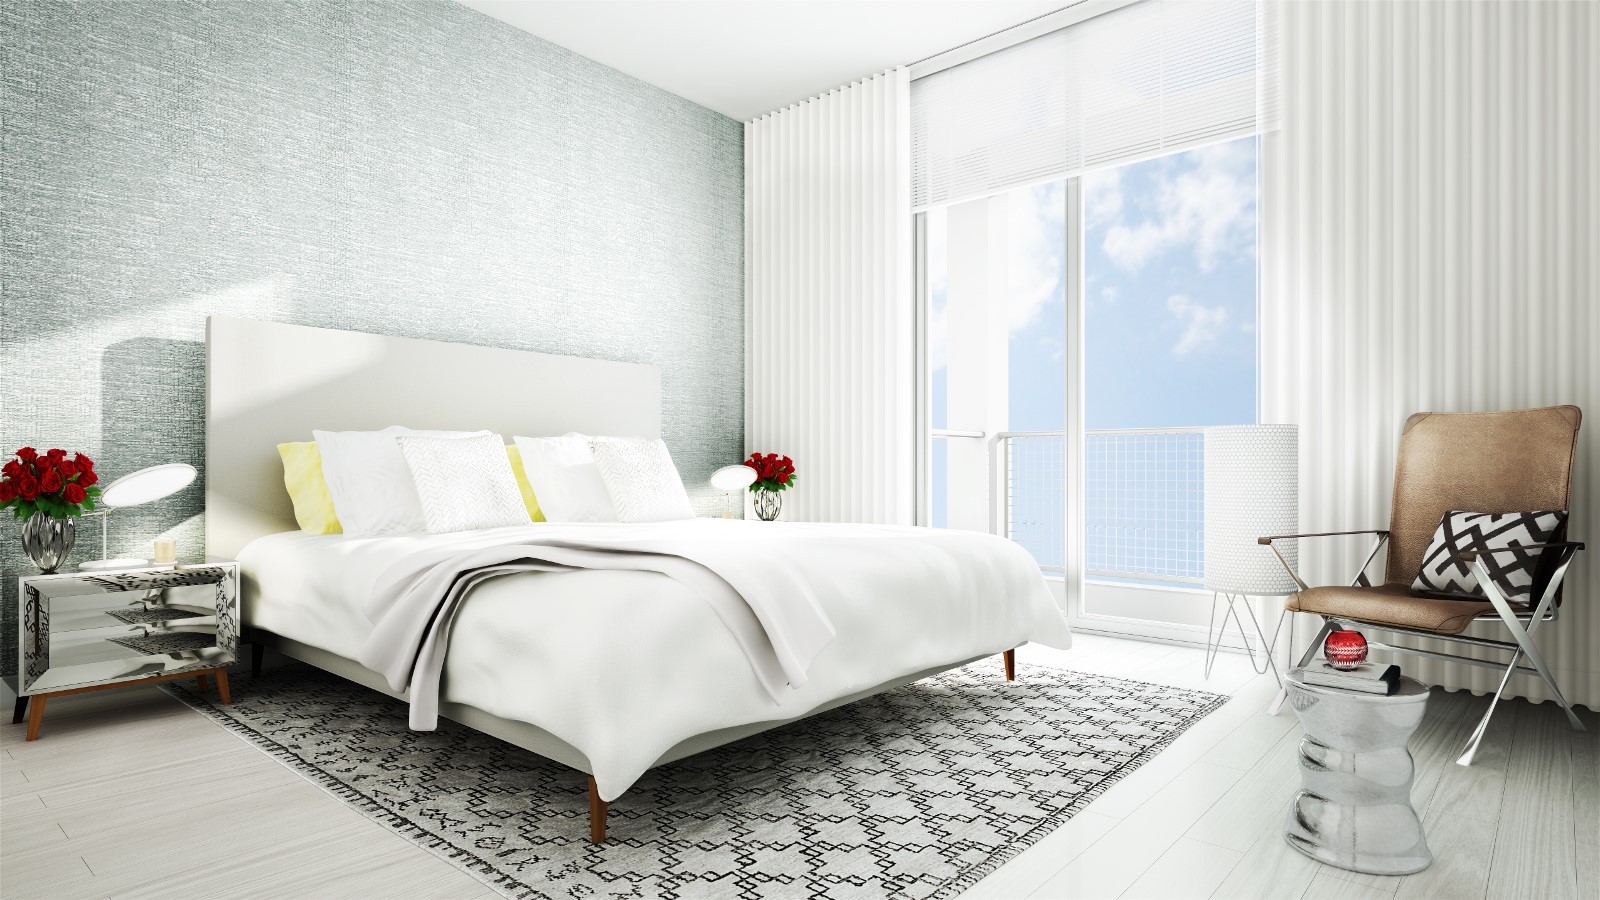 Metropica_Bedroom_Minimal_HR.jpg